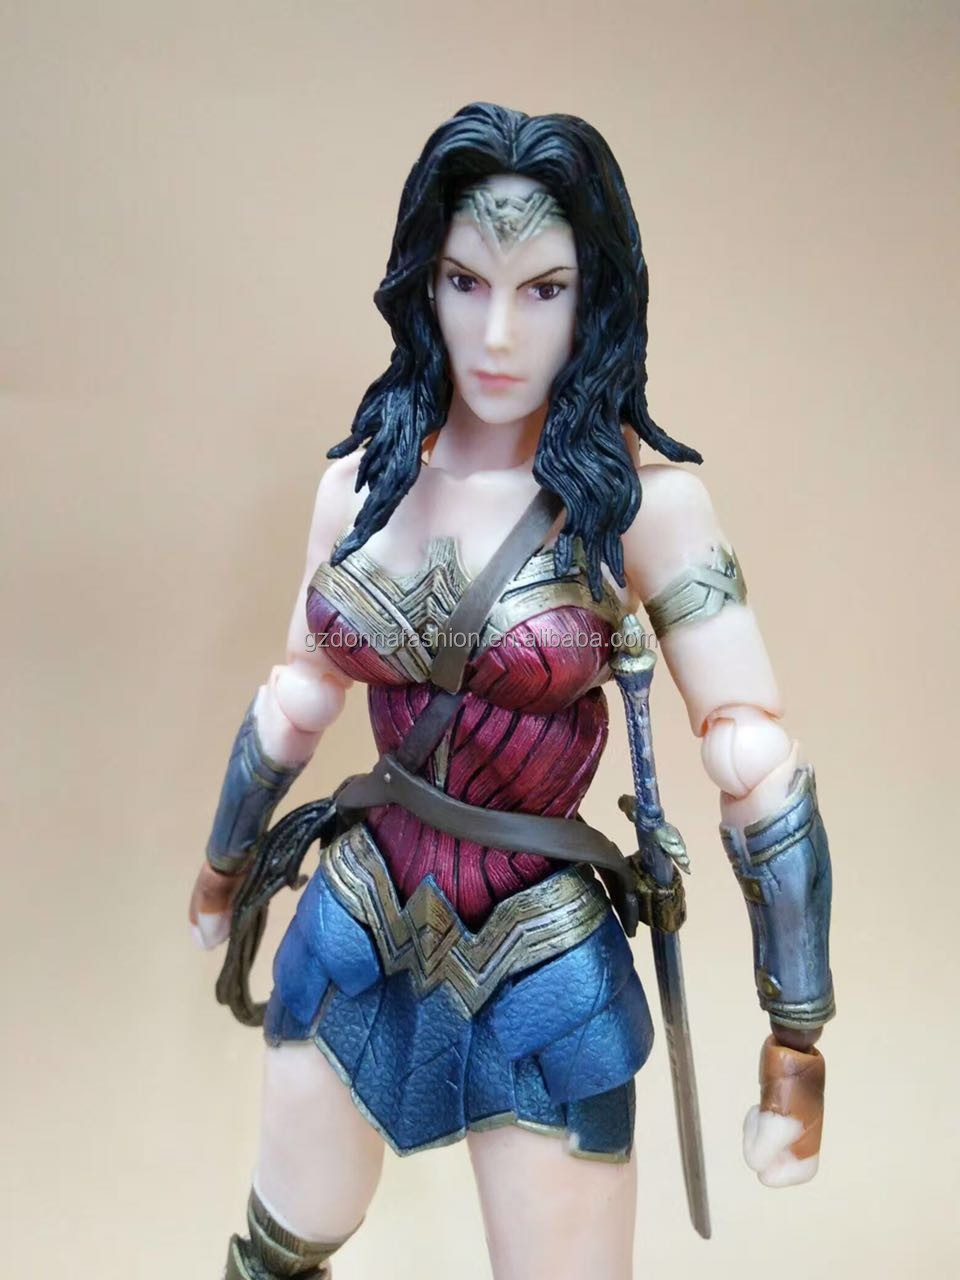 Gzdonnafashion Play Arts Kai Wonder Woman Action Figures Dawn of Justice Action Figure